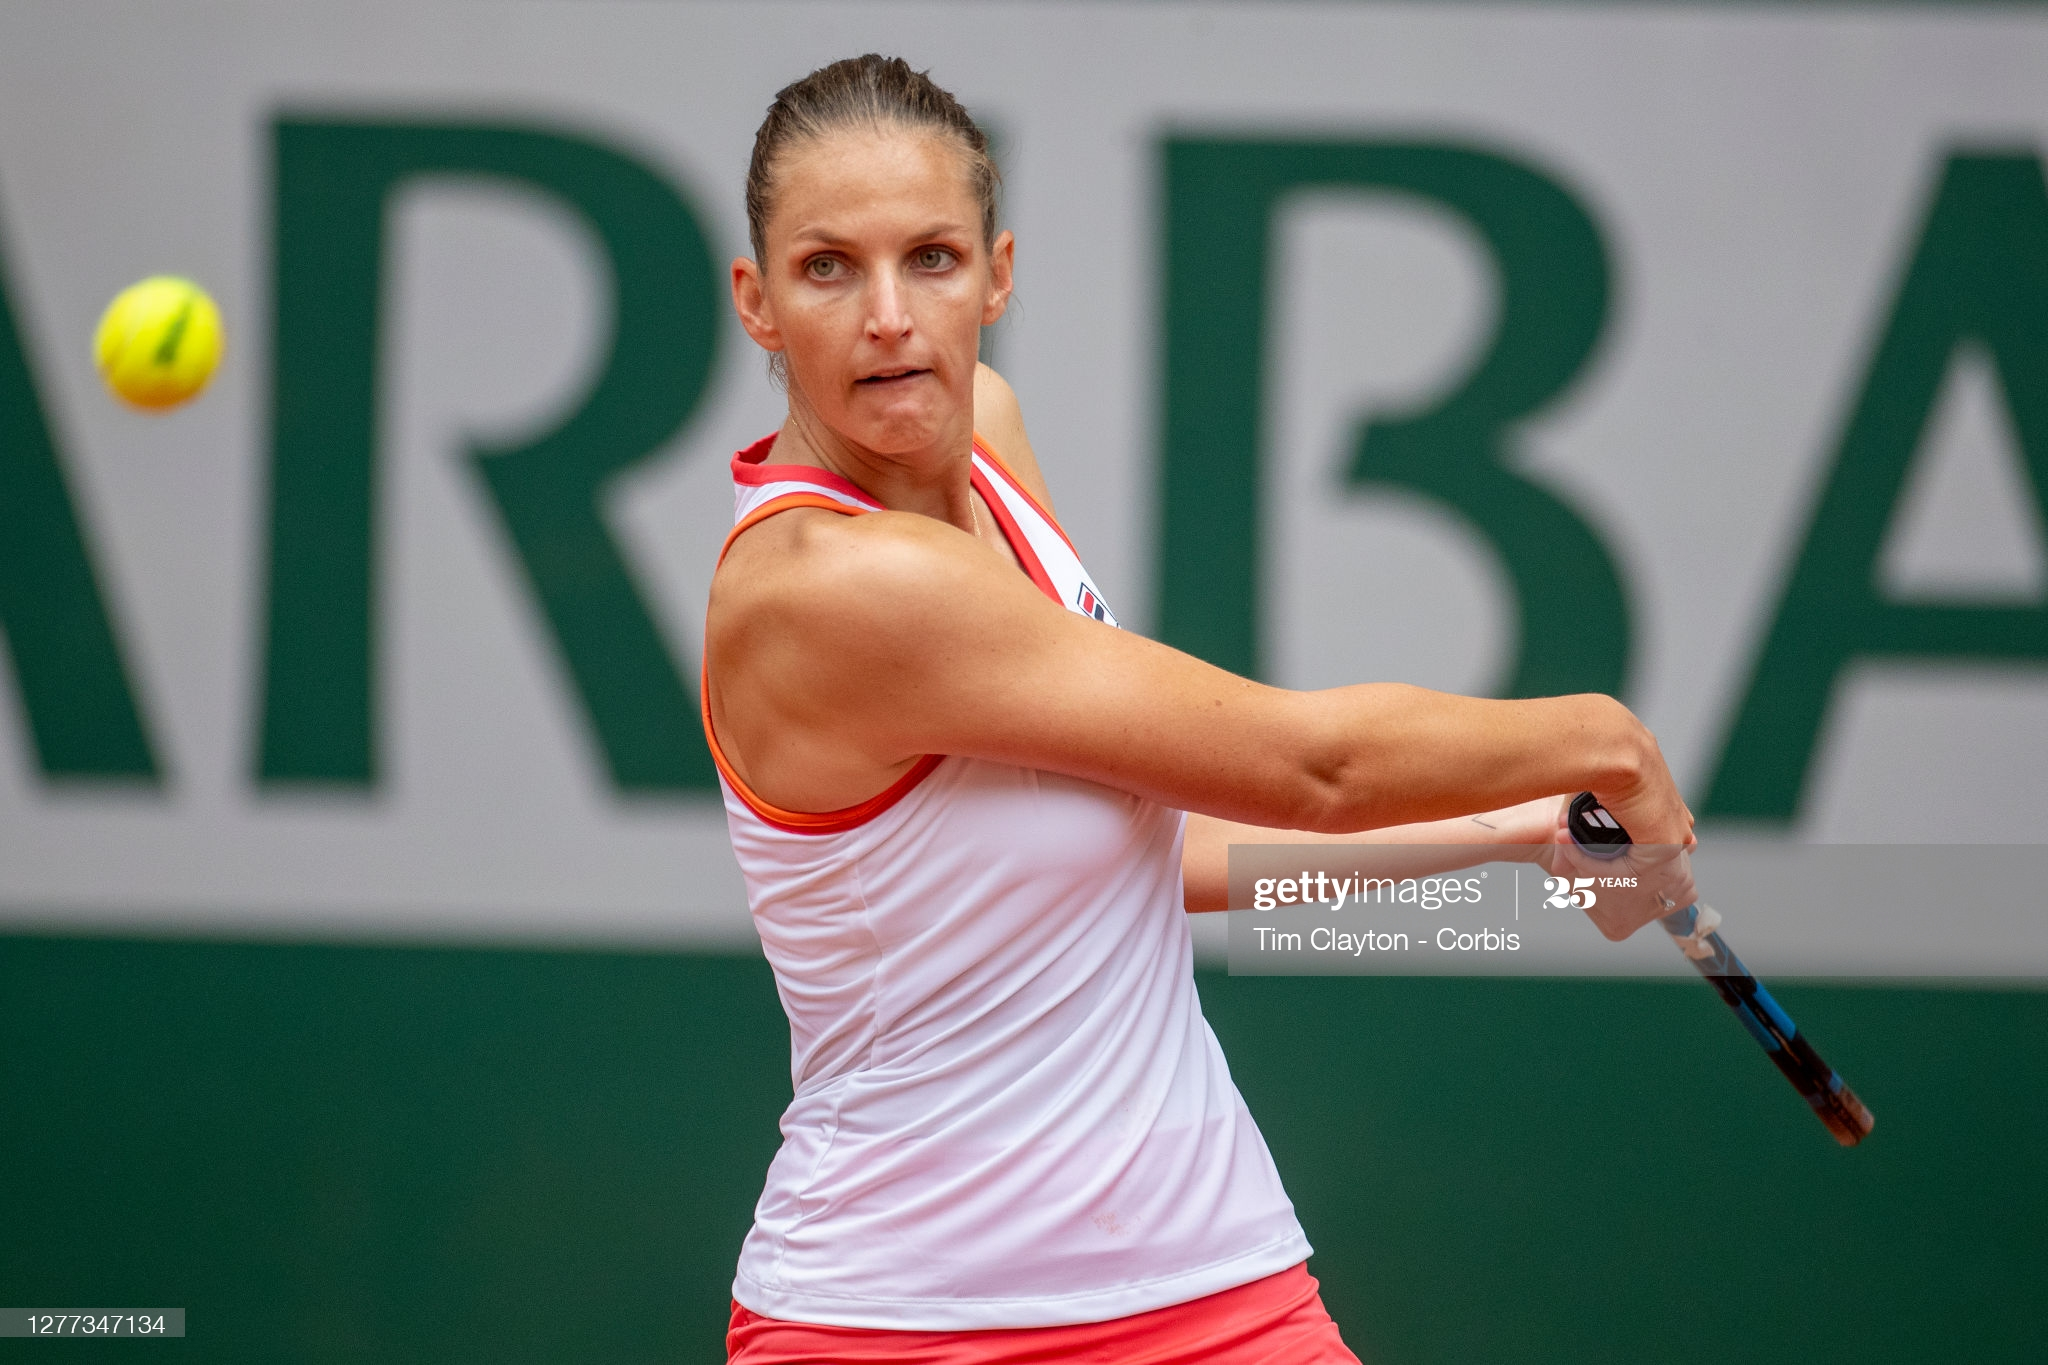 pliskova day 3 french open 2020